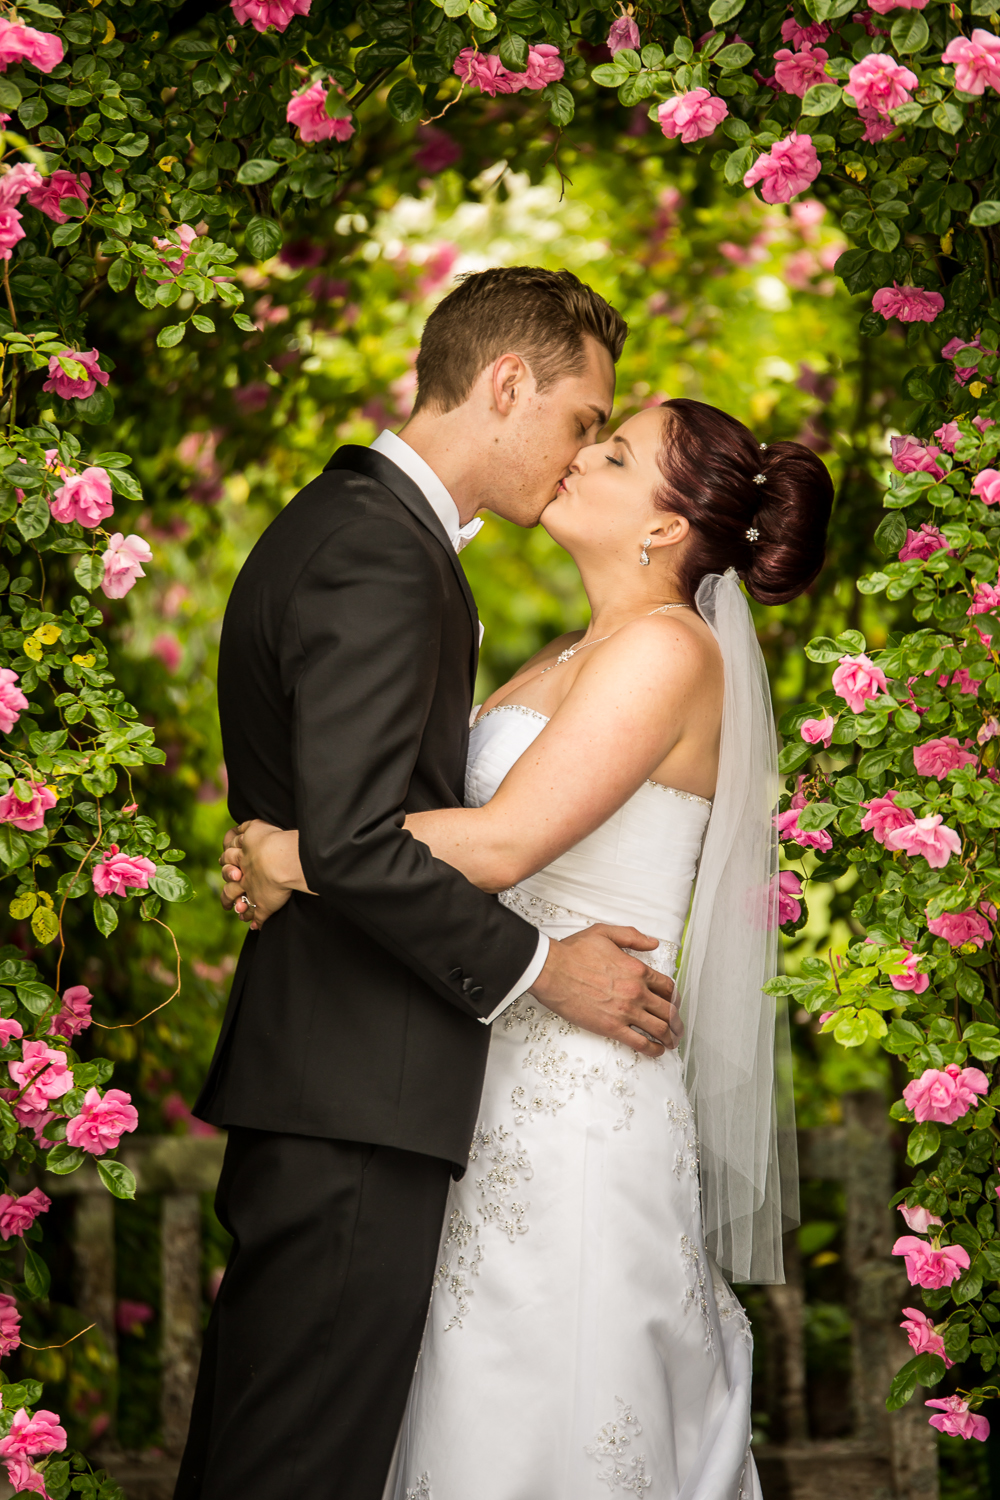 Bride and Groom under the roses.